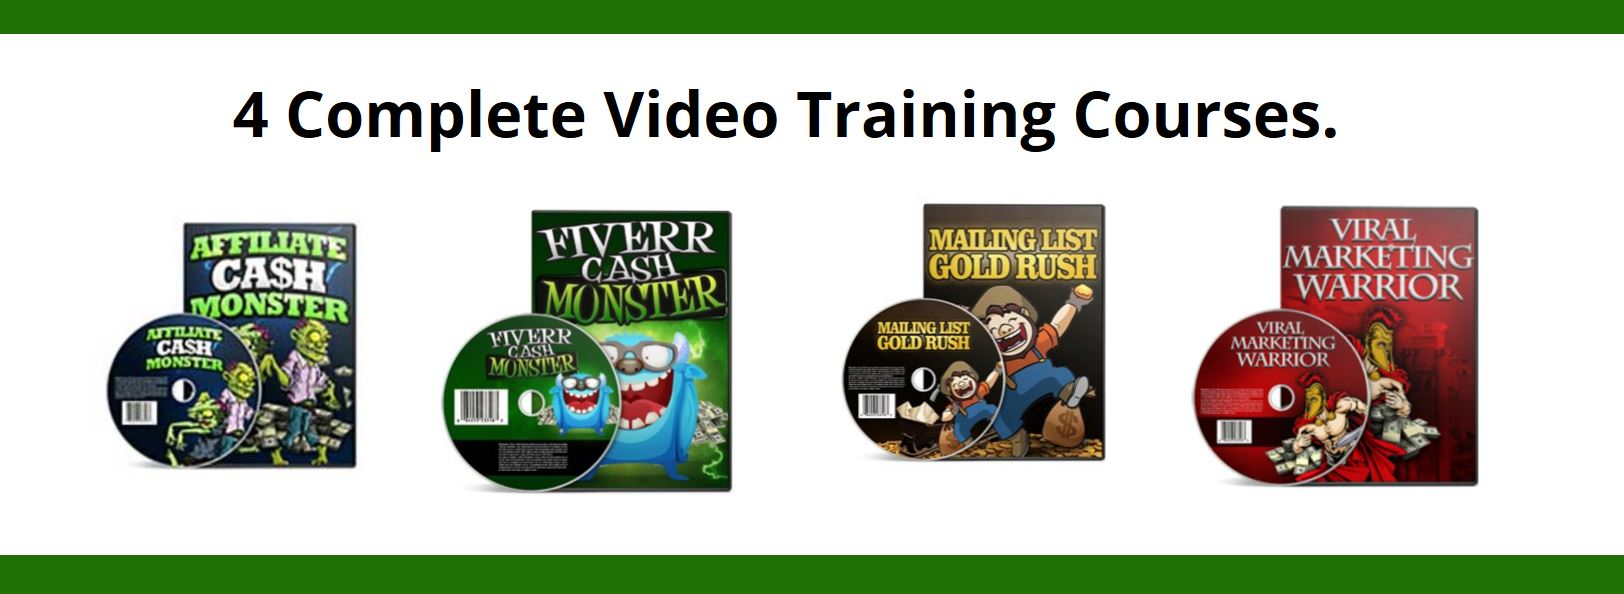 4 Complete Video Training Courses